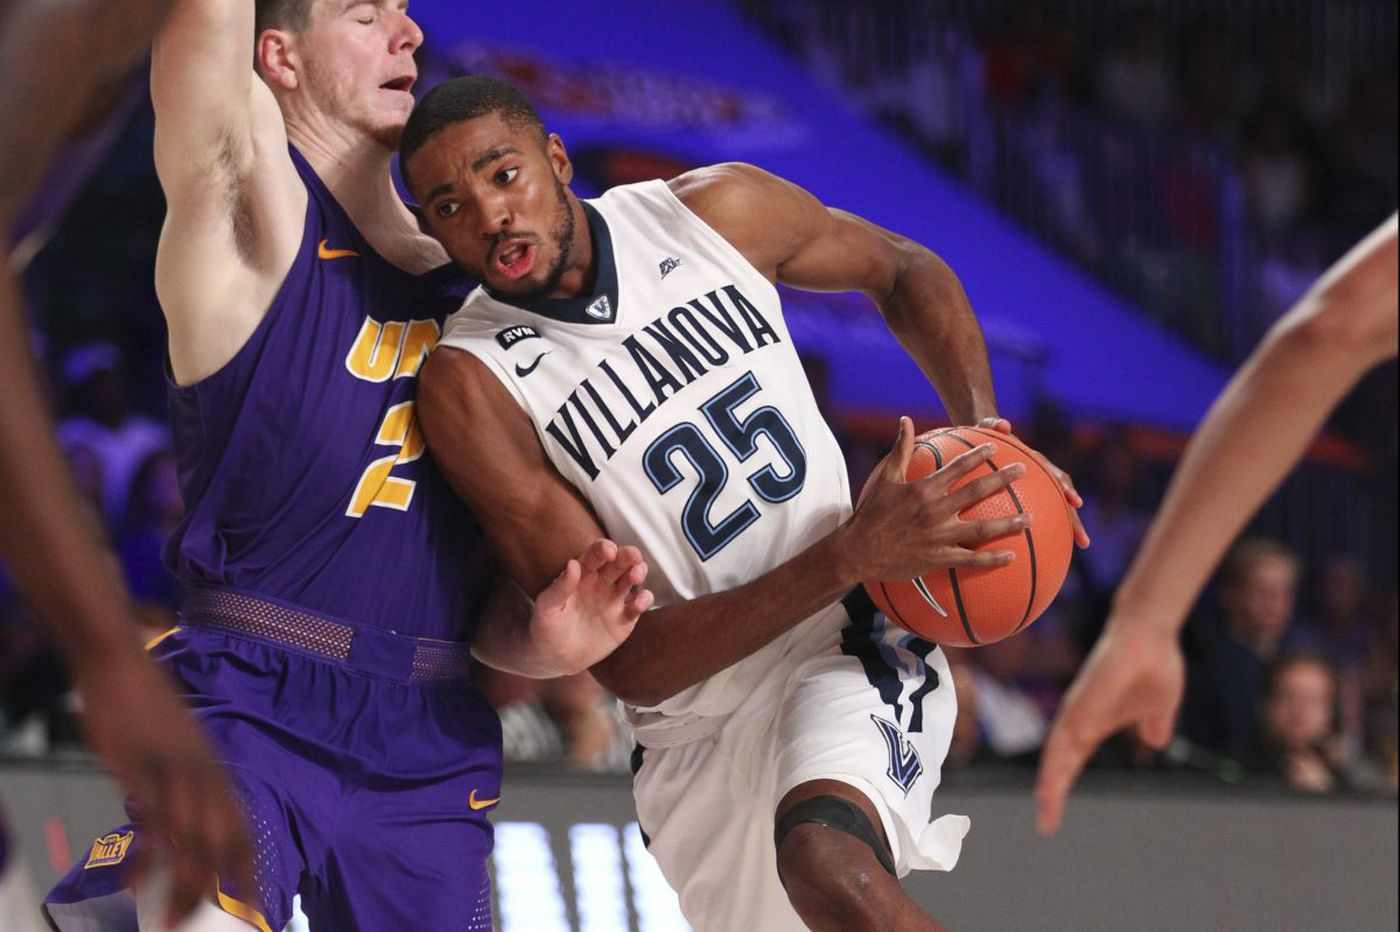 Villanova looking to continue hold on Big Five as it hosts Penn at Jake Nevin Field House